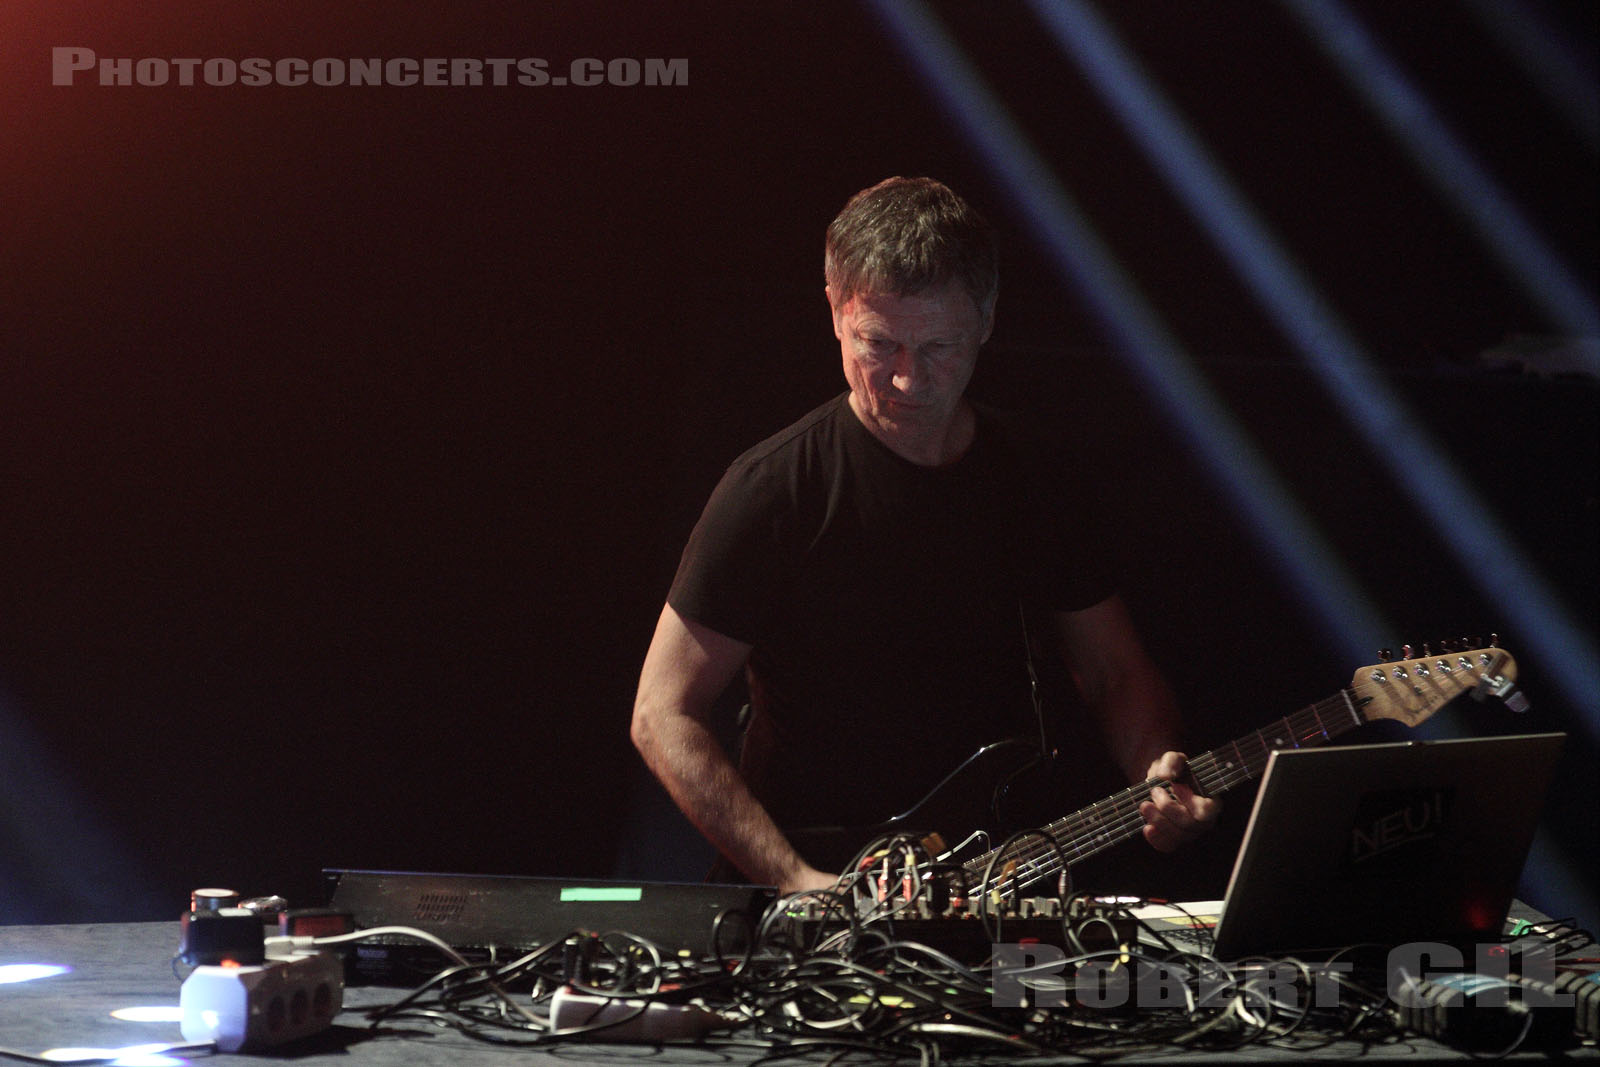 MICHAEL ROTHER - 2013-05-18 - PARIS - Cite de la Musique